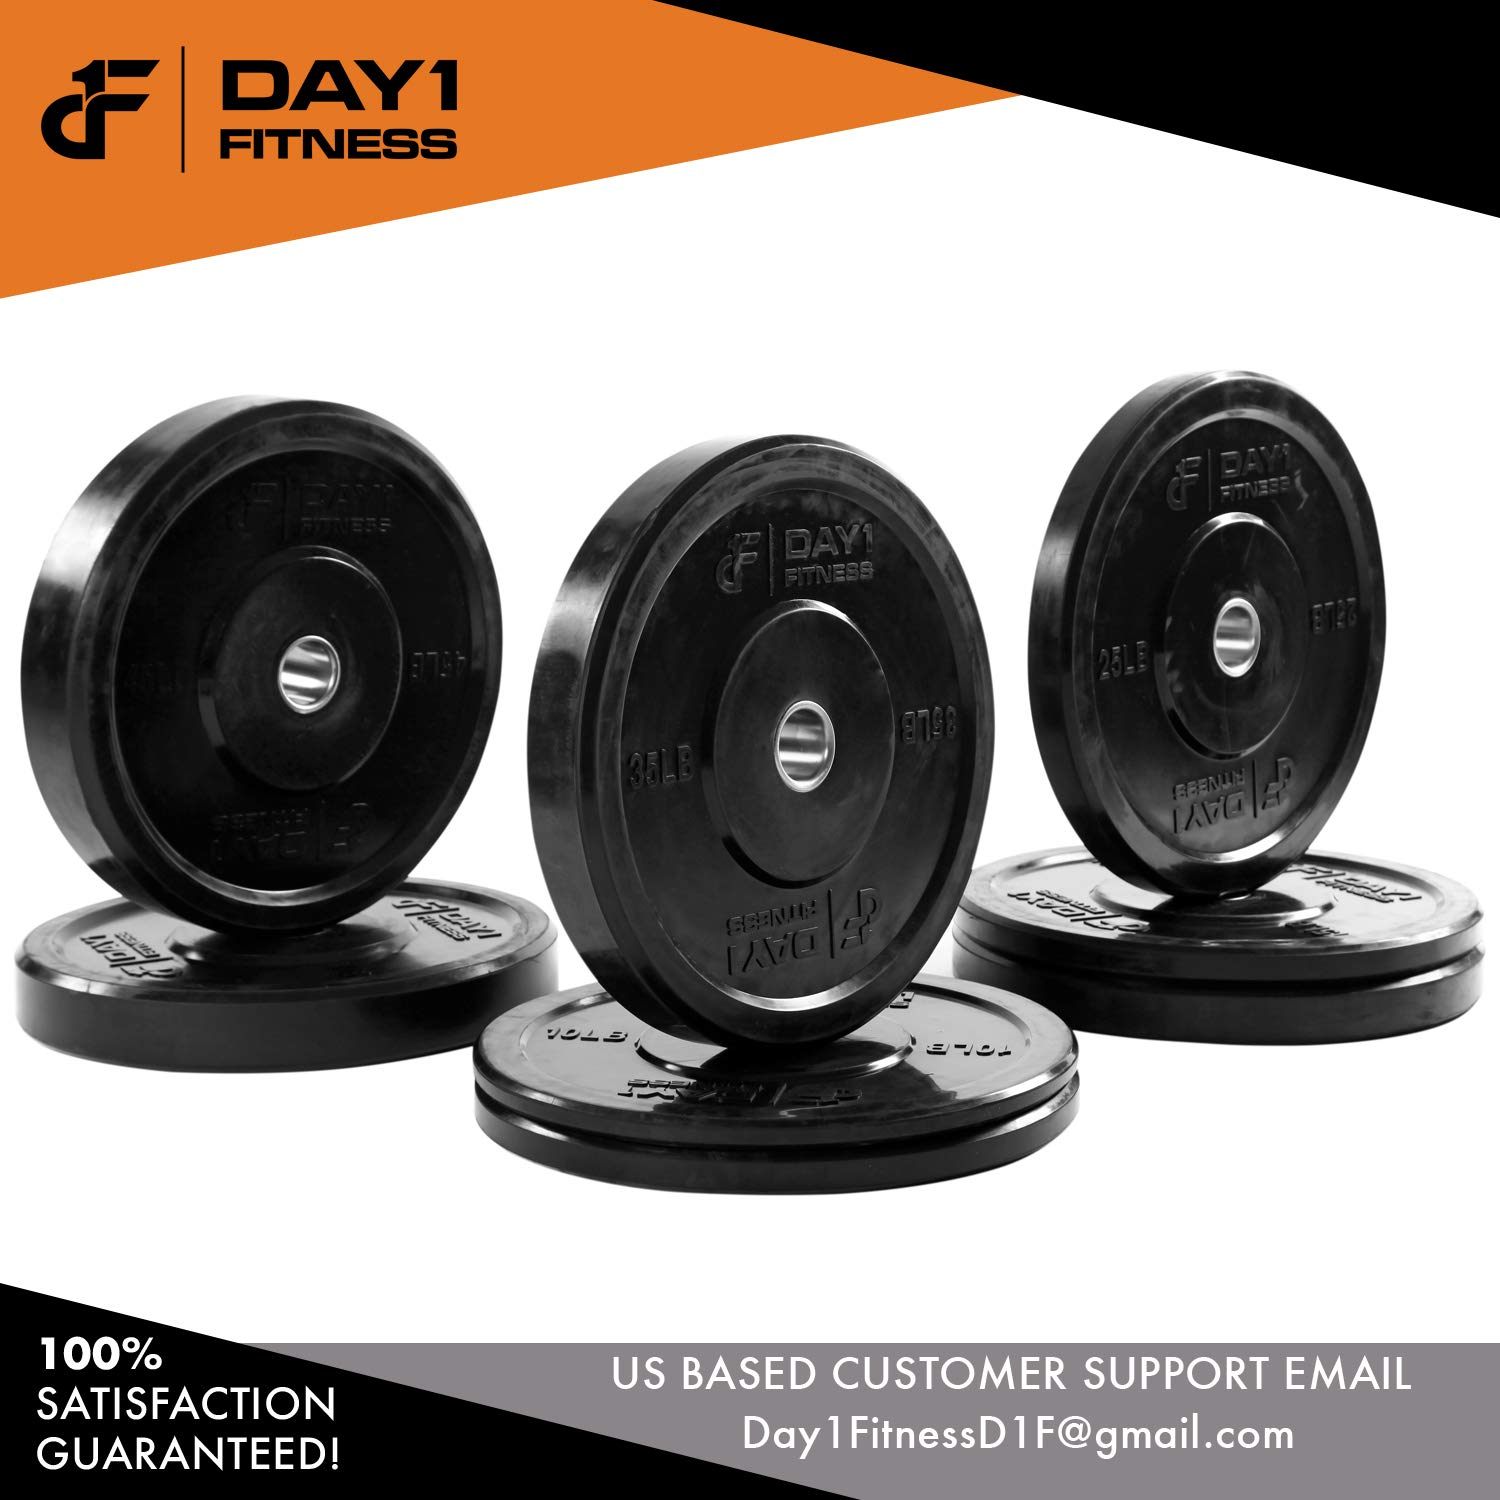 "Day 1 Fitness Olympic Bumper Weighted Plate 2"" for Barbells, Bars – 25 lb Set of 2 Plates - Shock-Absorbing, Minimal Bounce Steel Weights with Bumpers for Lifting, Strength Training, and Working Out by Day 1 Fitness (Image #7)"